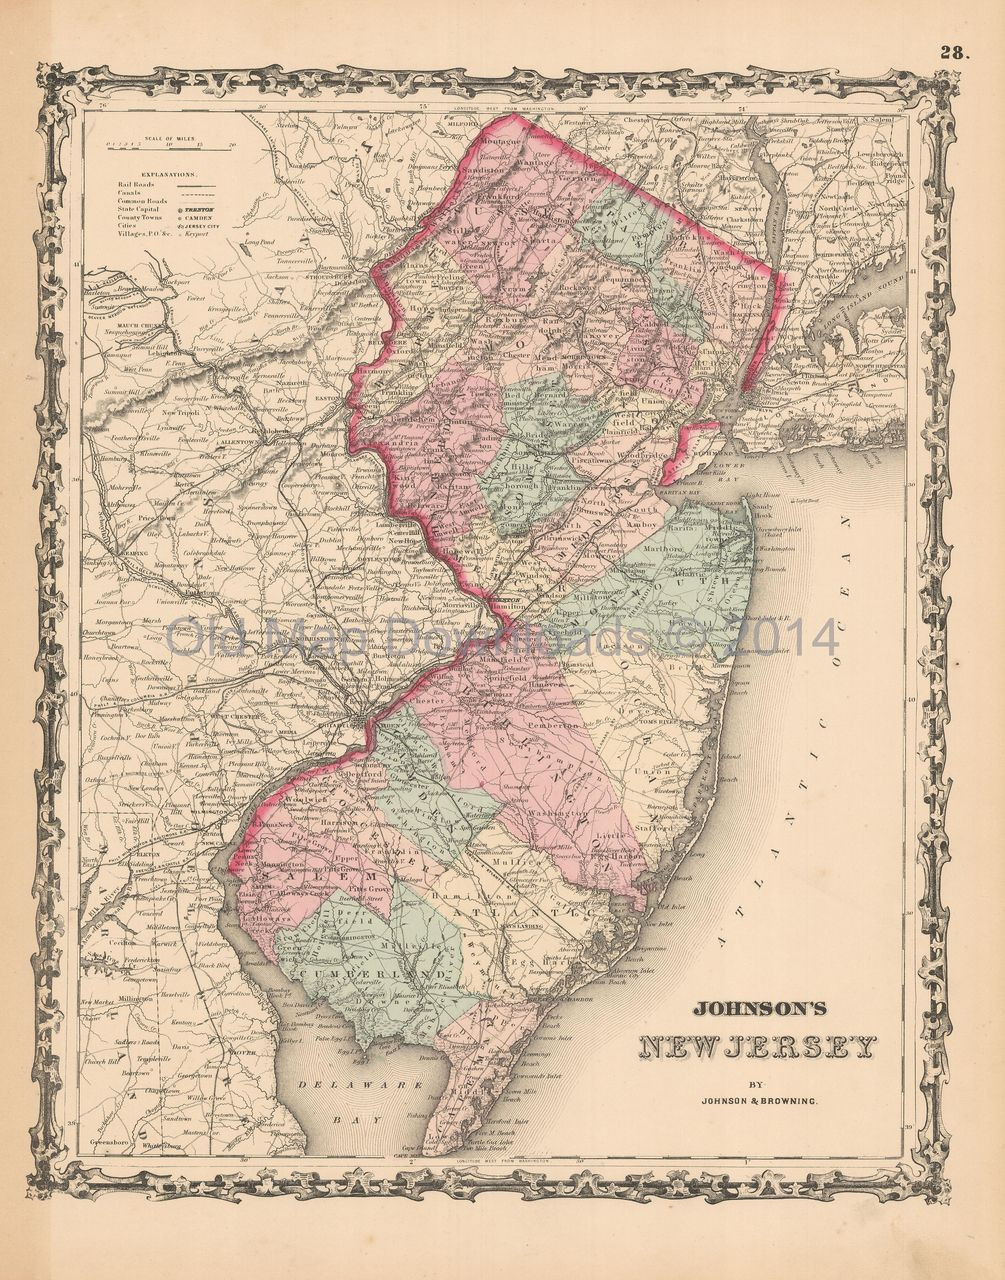 New Jersey Old Map Johnson 1861 Digital Image Scan Download Printable Old Map Downloads